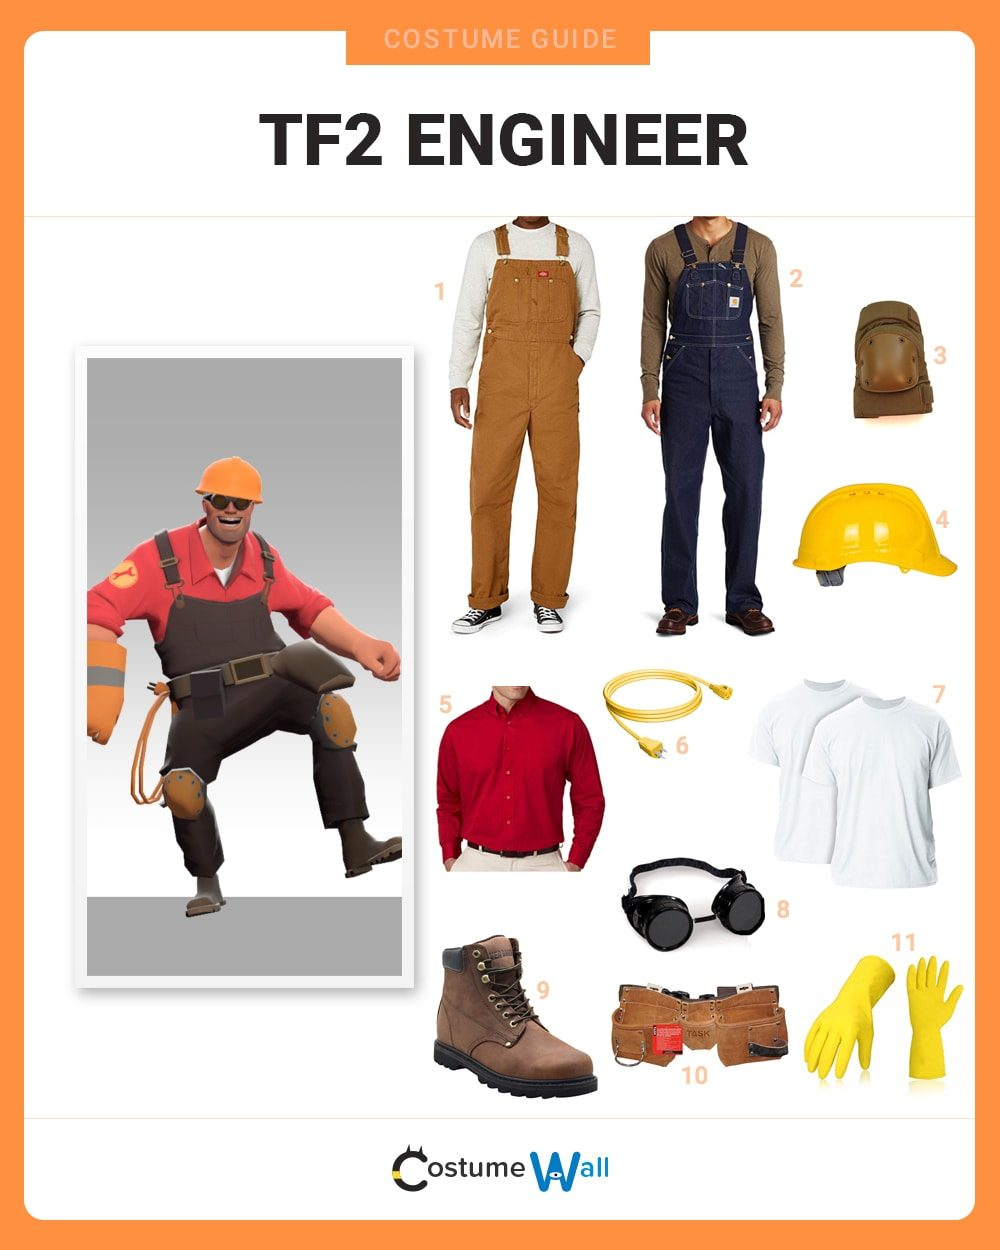 Dress Like Tf2 Engineer Costume Halloween And Cosplay Guides